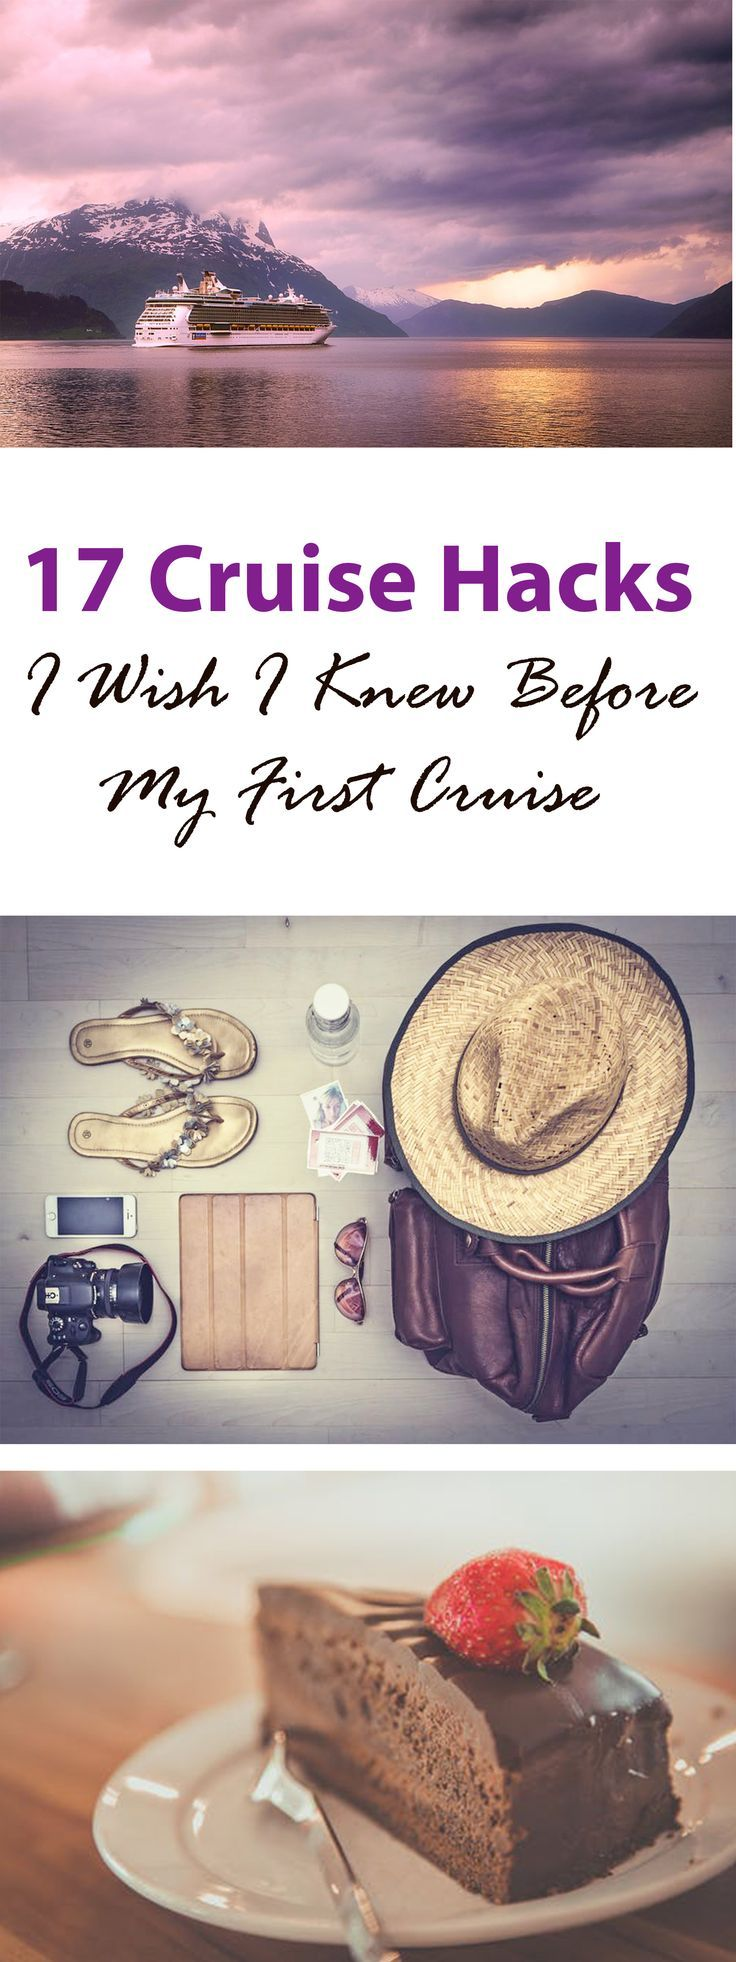 17 Things I Wish I knew before my first cruise.